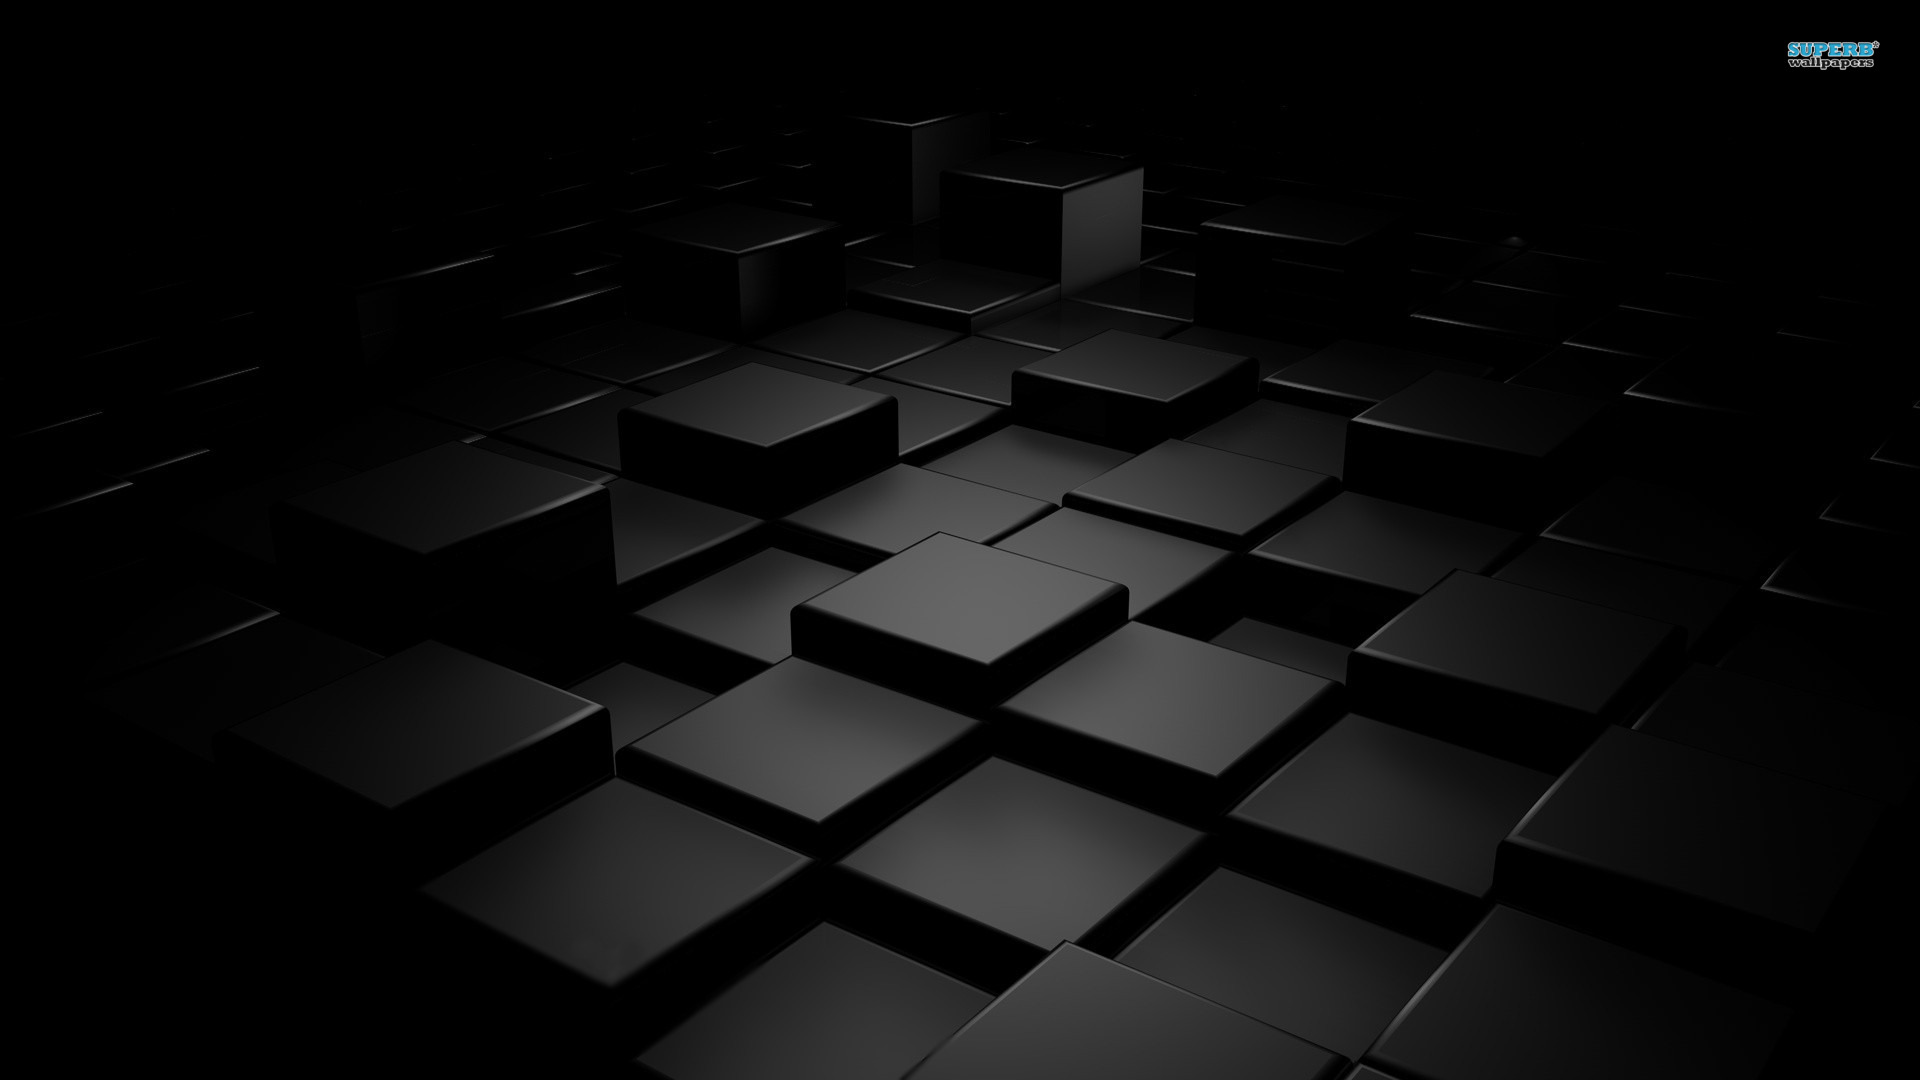 Cubes wallpaper 1920x1080 jpg